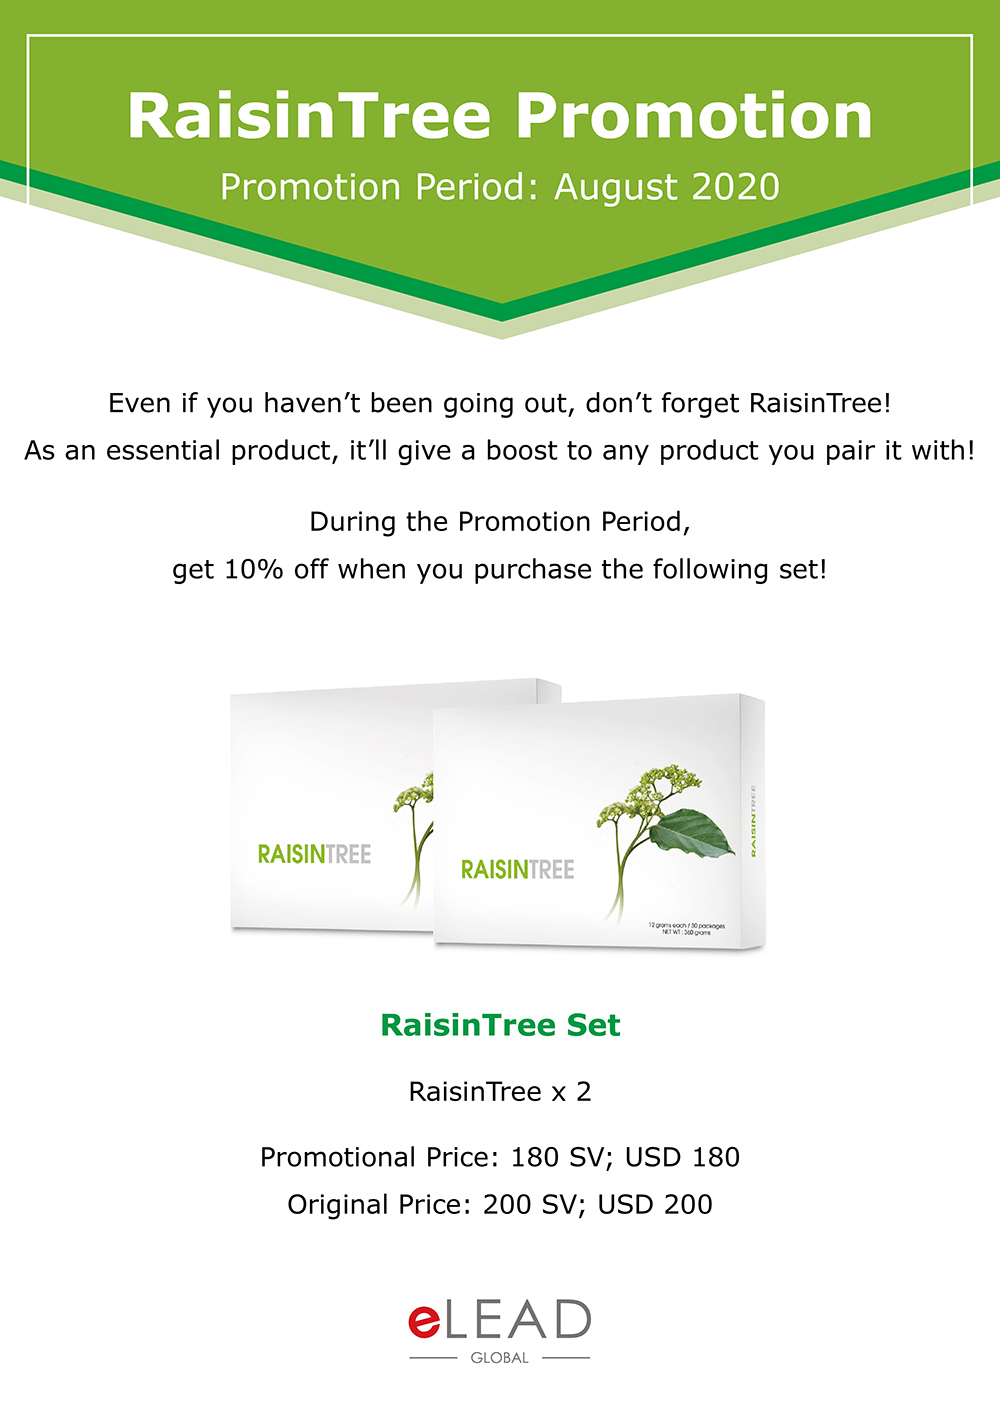 RaisinTree Promotion